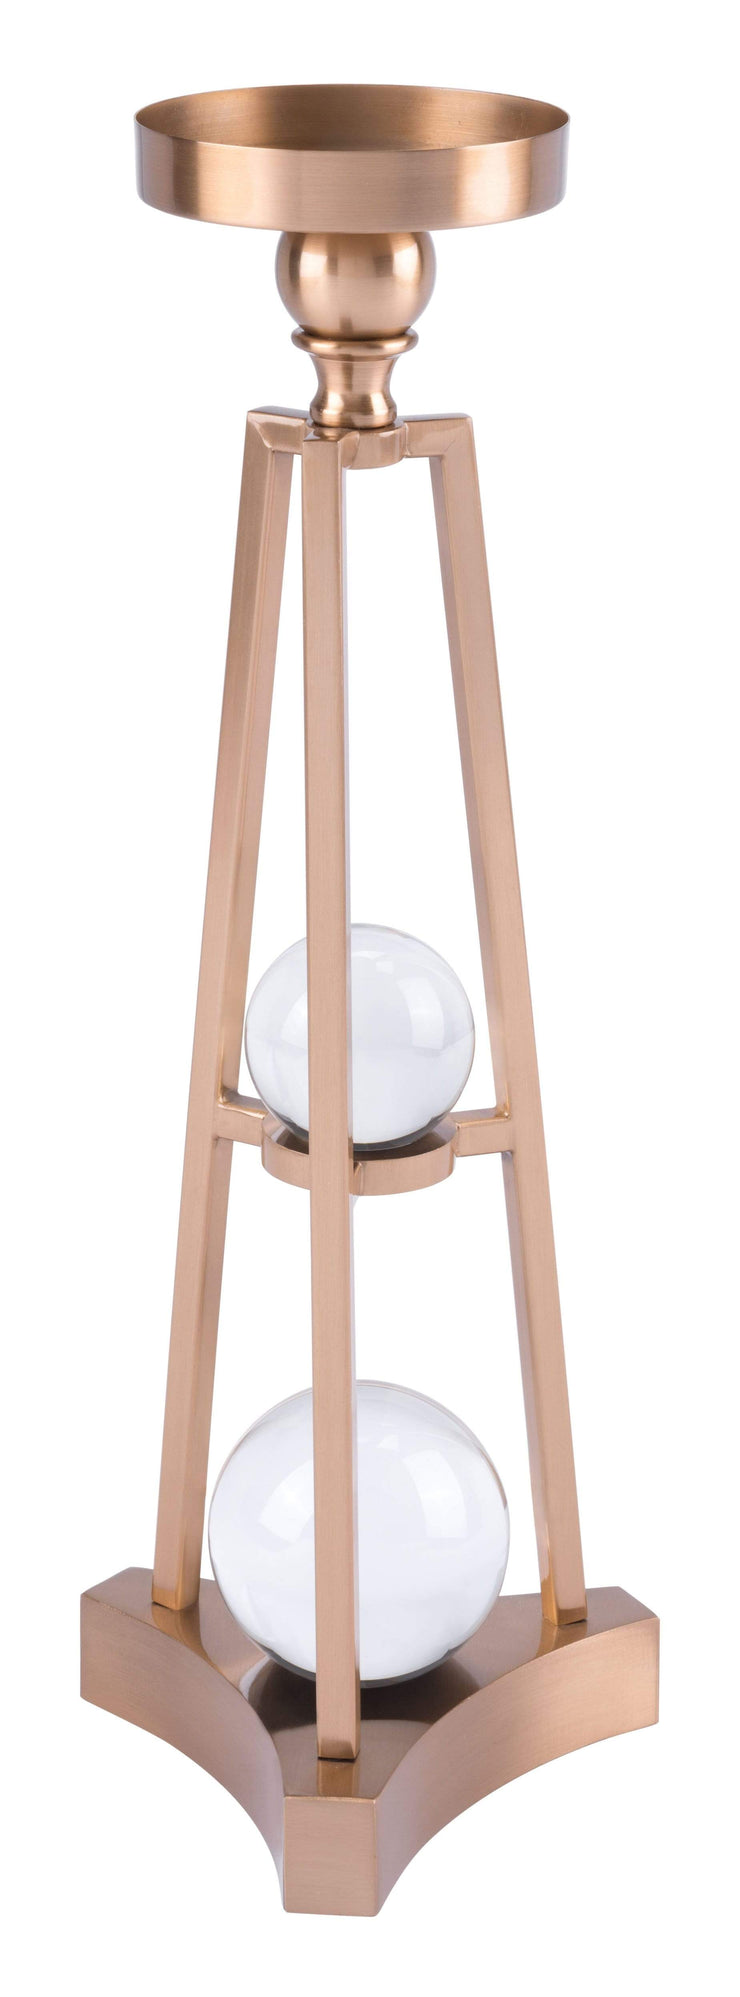 Zuo Modern Candle Holder With Orbs Sm Antique Brass Candle Holder With Orbs Sm Antique Brass LUNAVUE Shapewear